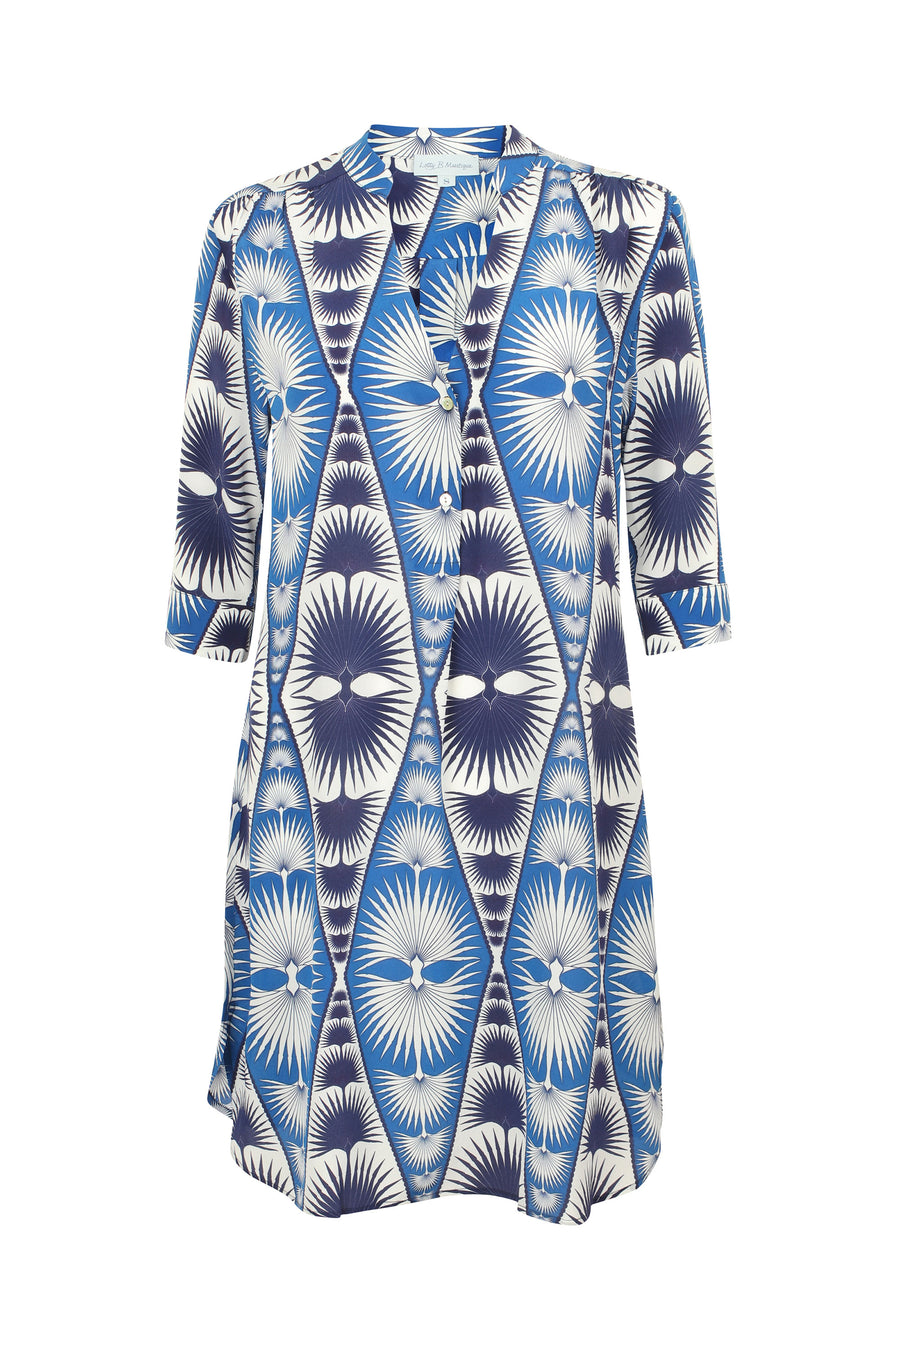 Lotty B Flared Dress in Silk Crepe-de-Chine: FAN PALM REPEAT - BLUE / WHITE